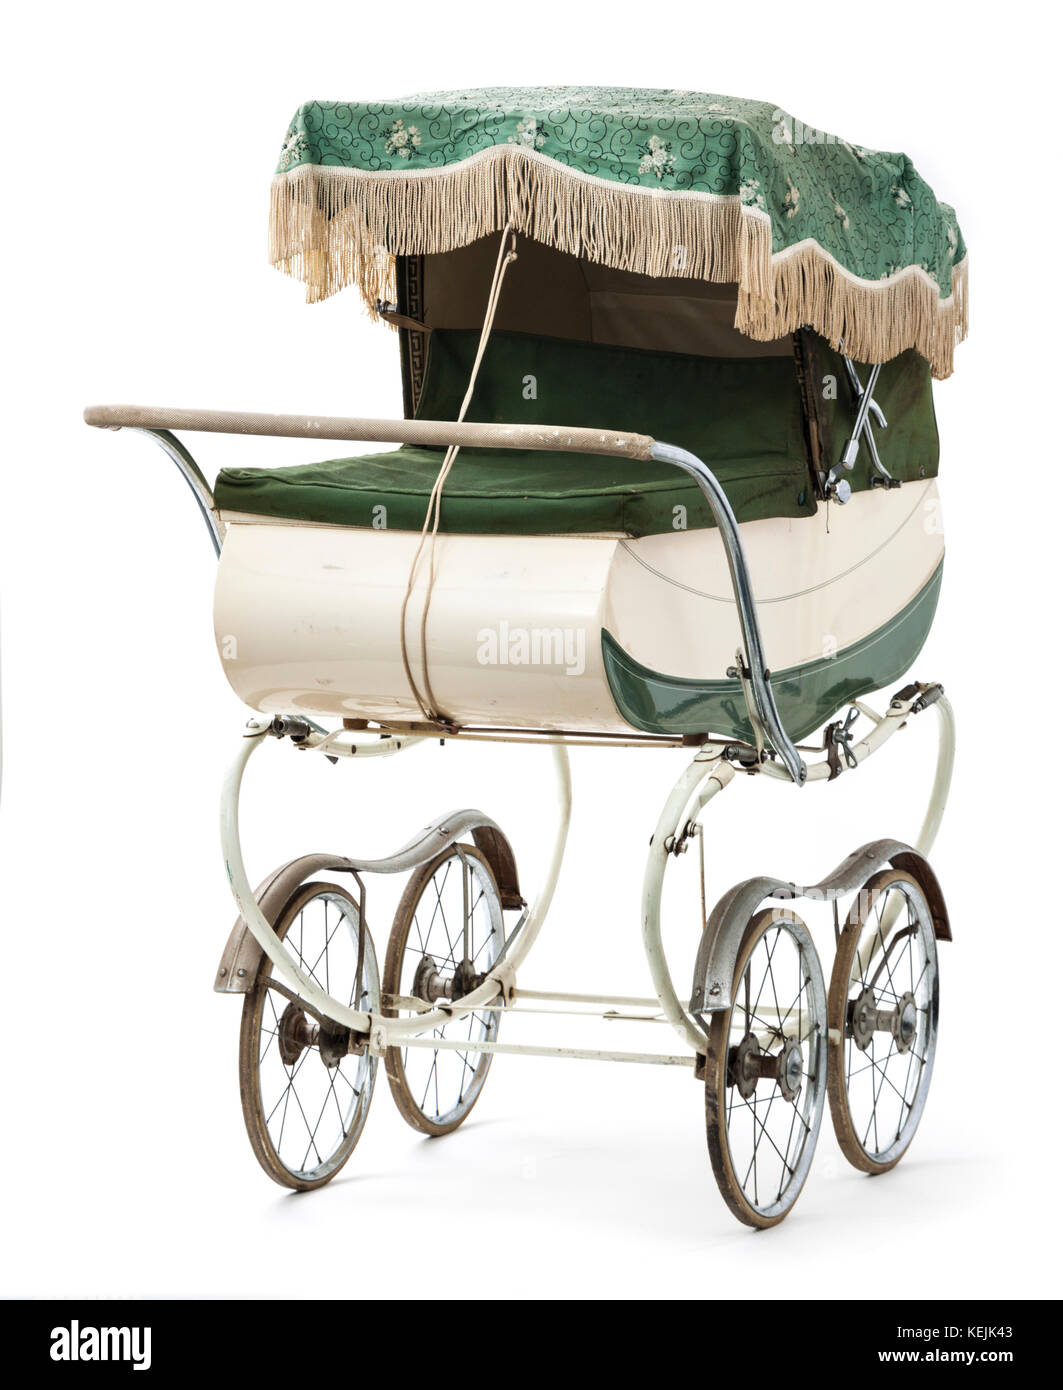 vintage early 1960 39 s restmor coach built carriage pram stock photo royalty free image. Black Bedroom Furniture Sets. Home Design Ideas